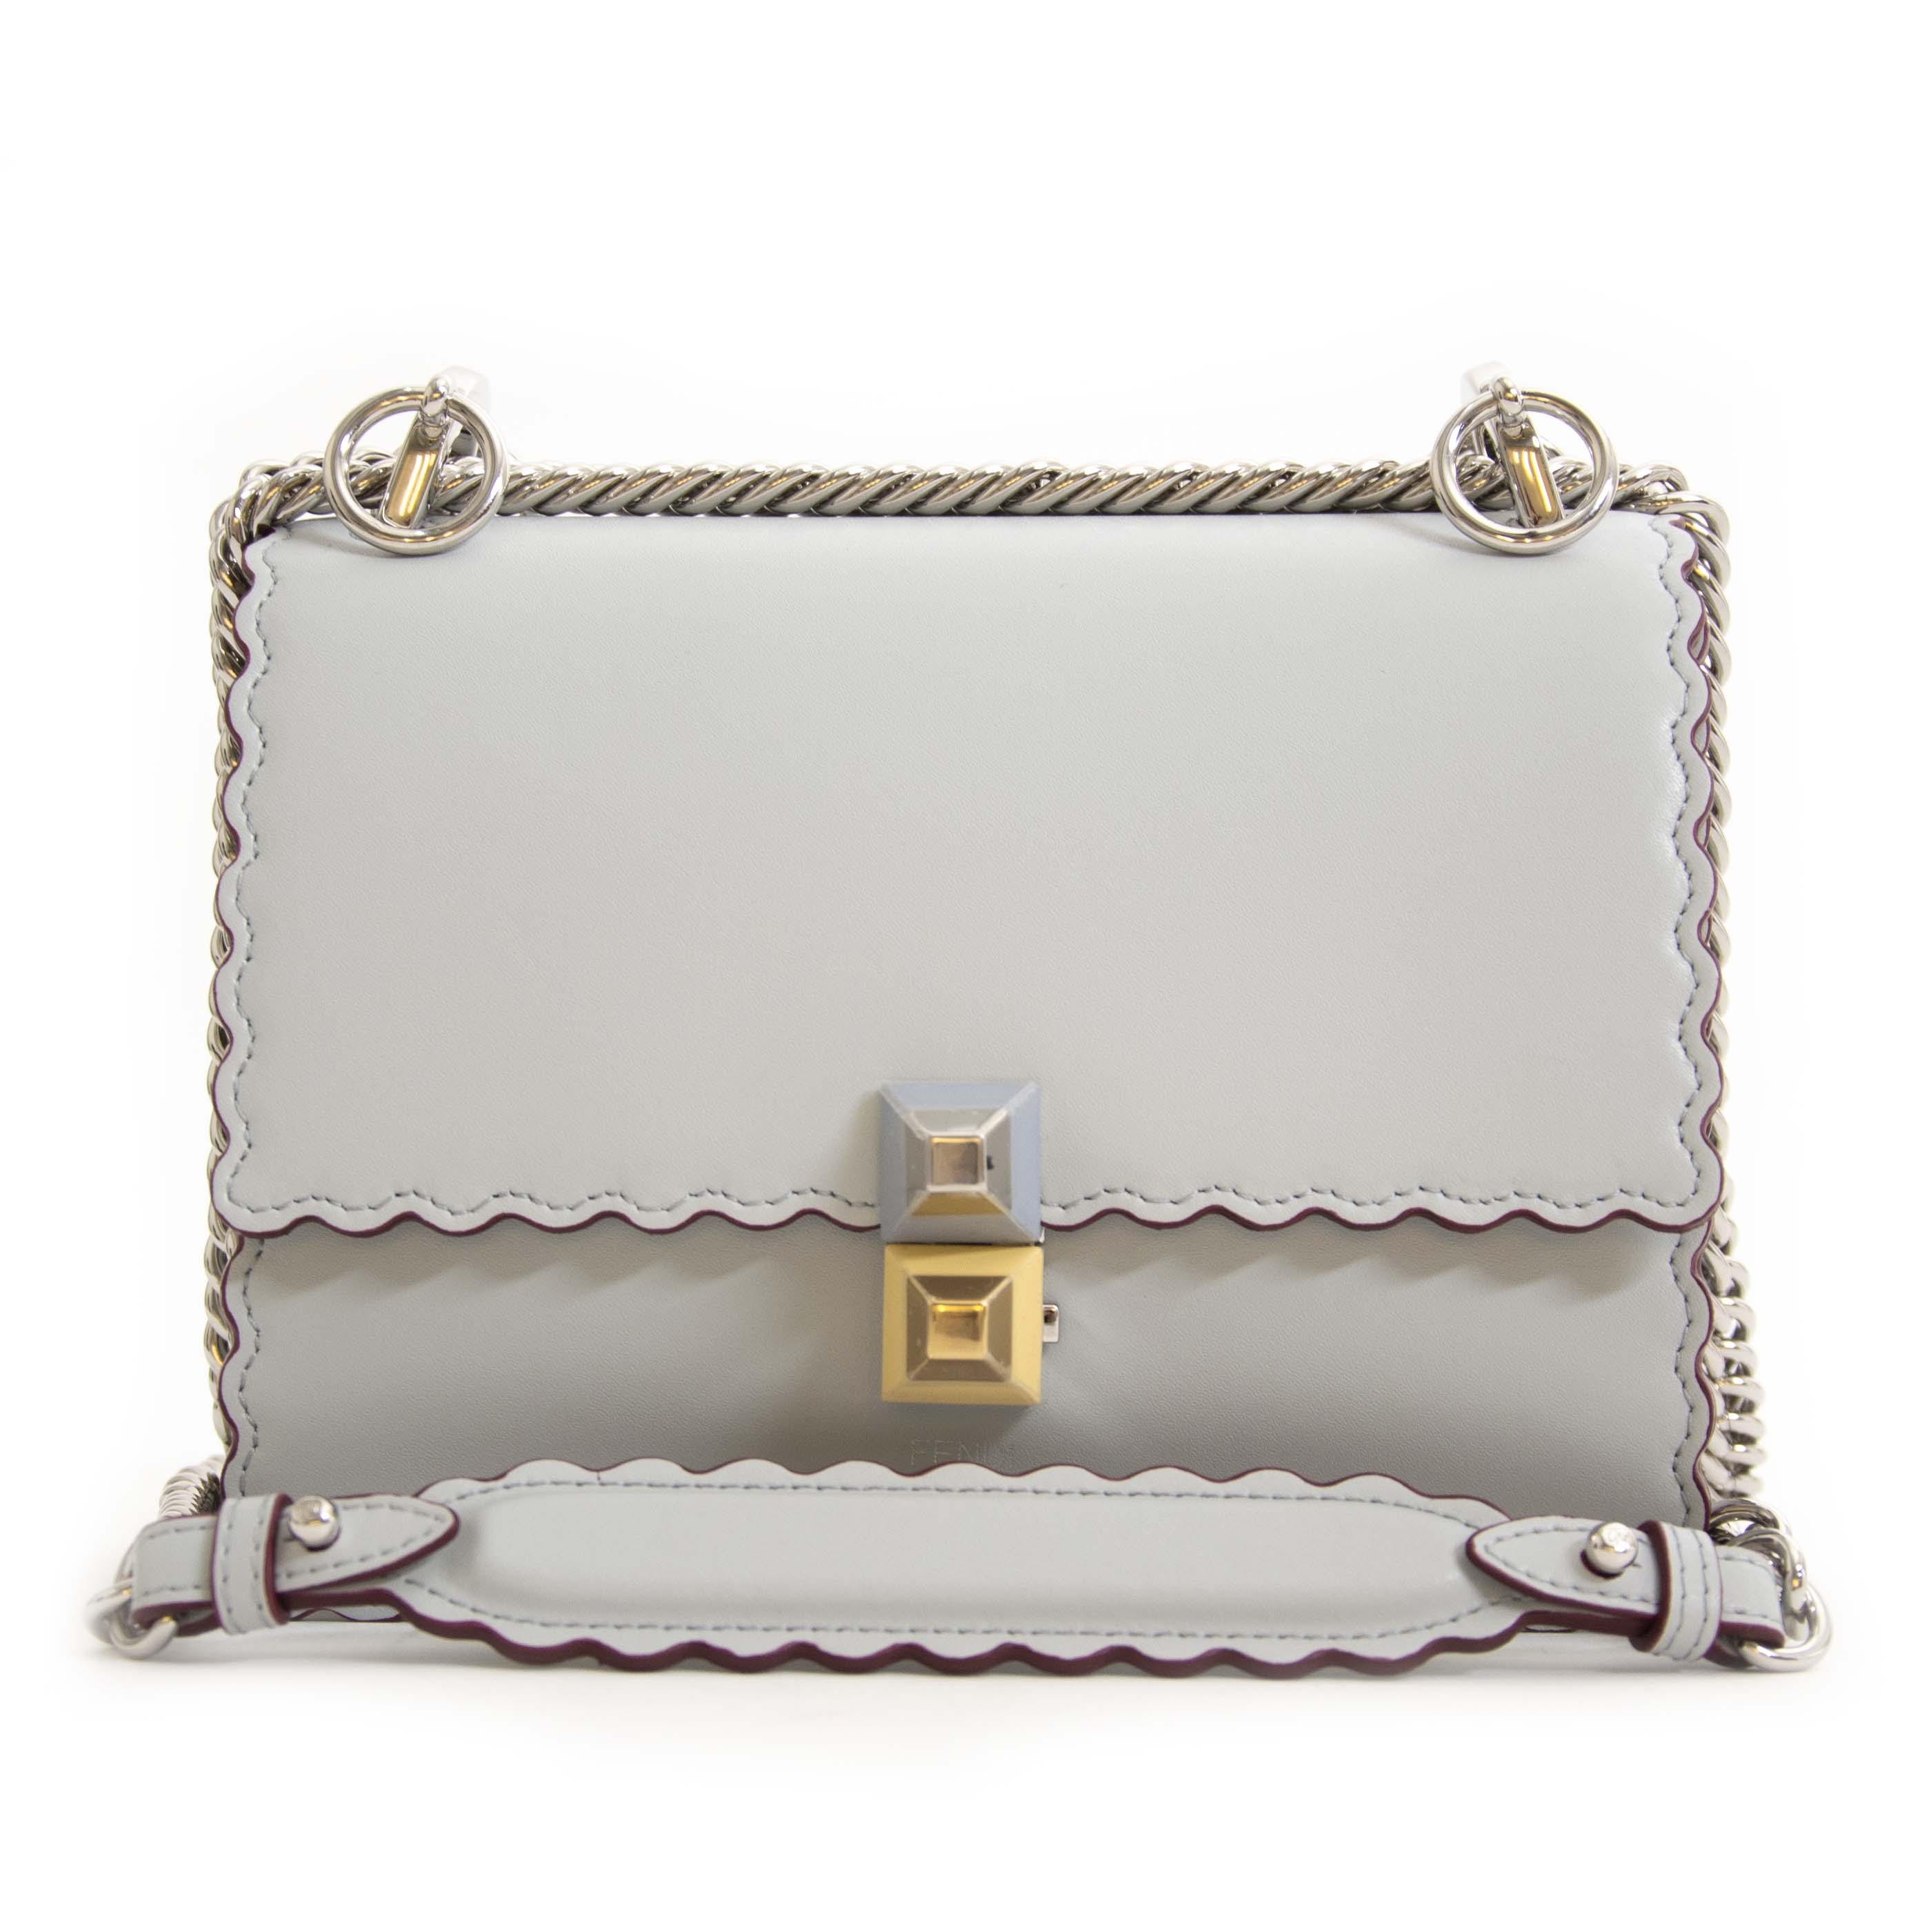 Fendi Small Kan I Pearl Grey Leather Crossbody Bag. Buy authentic secondhand Fendi crossbody bags now at Labellov vintage webshop for the lowest price. Koop authentieke tweedehands Fendi crossbody tassen bij labellov vintage mode webshop.